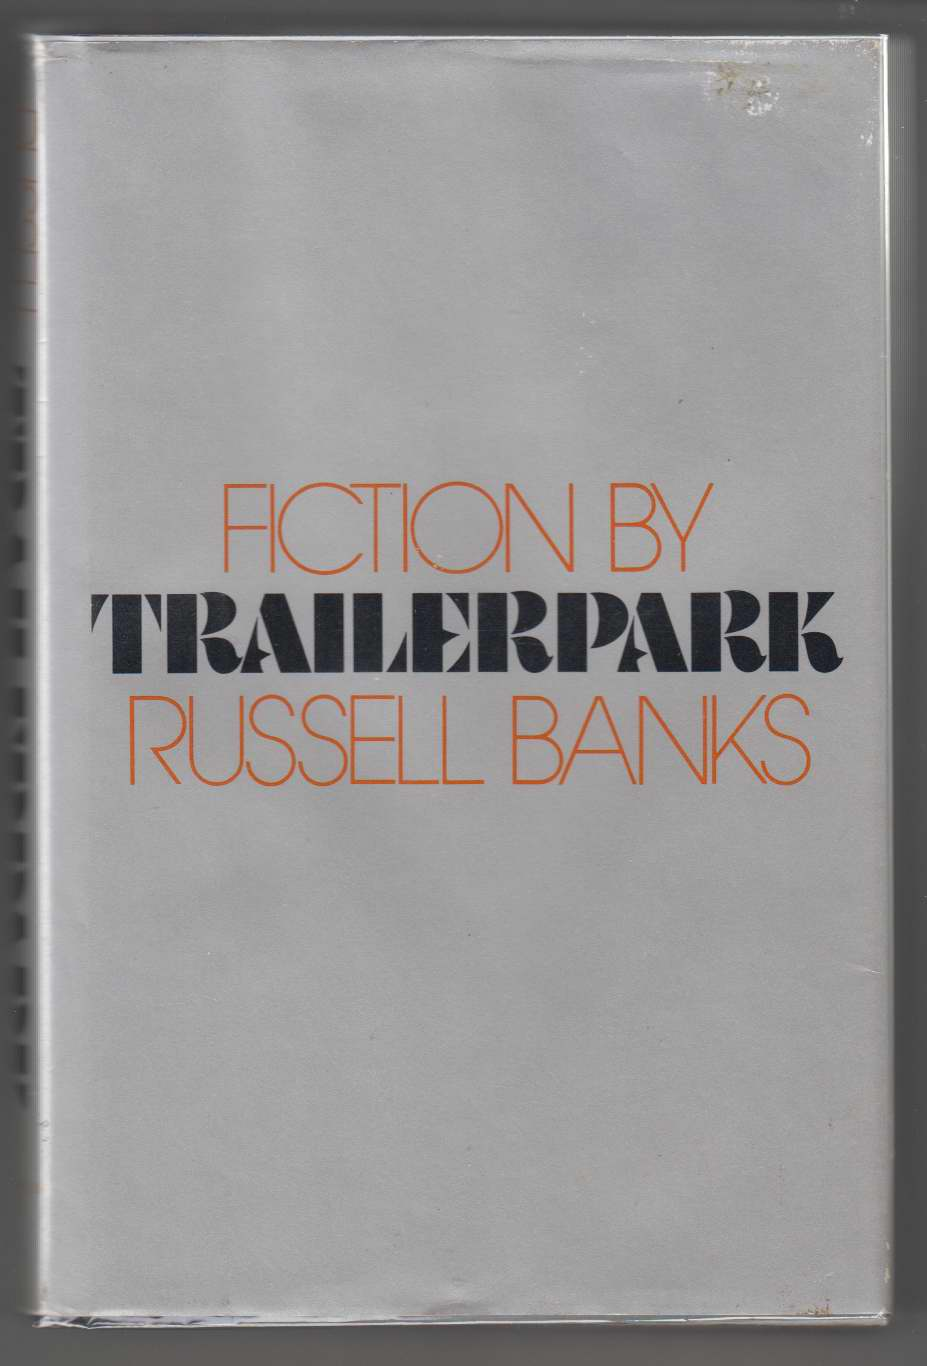 Trailerpark, Banks, Russell